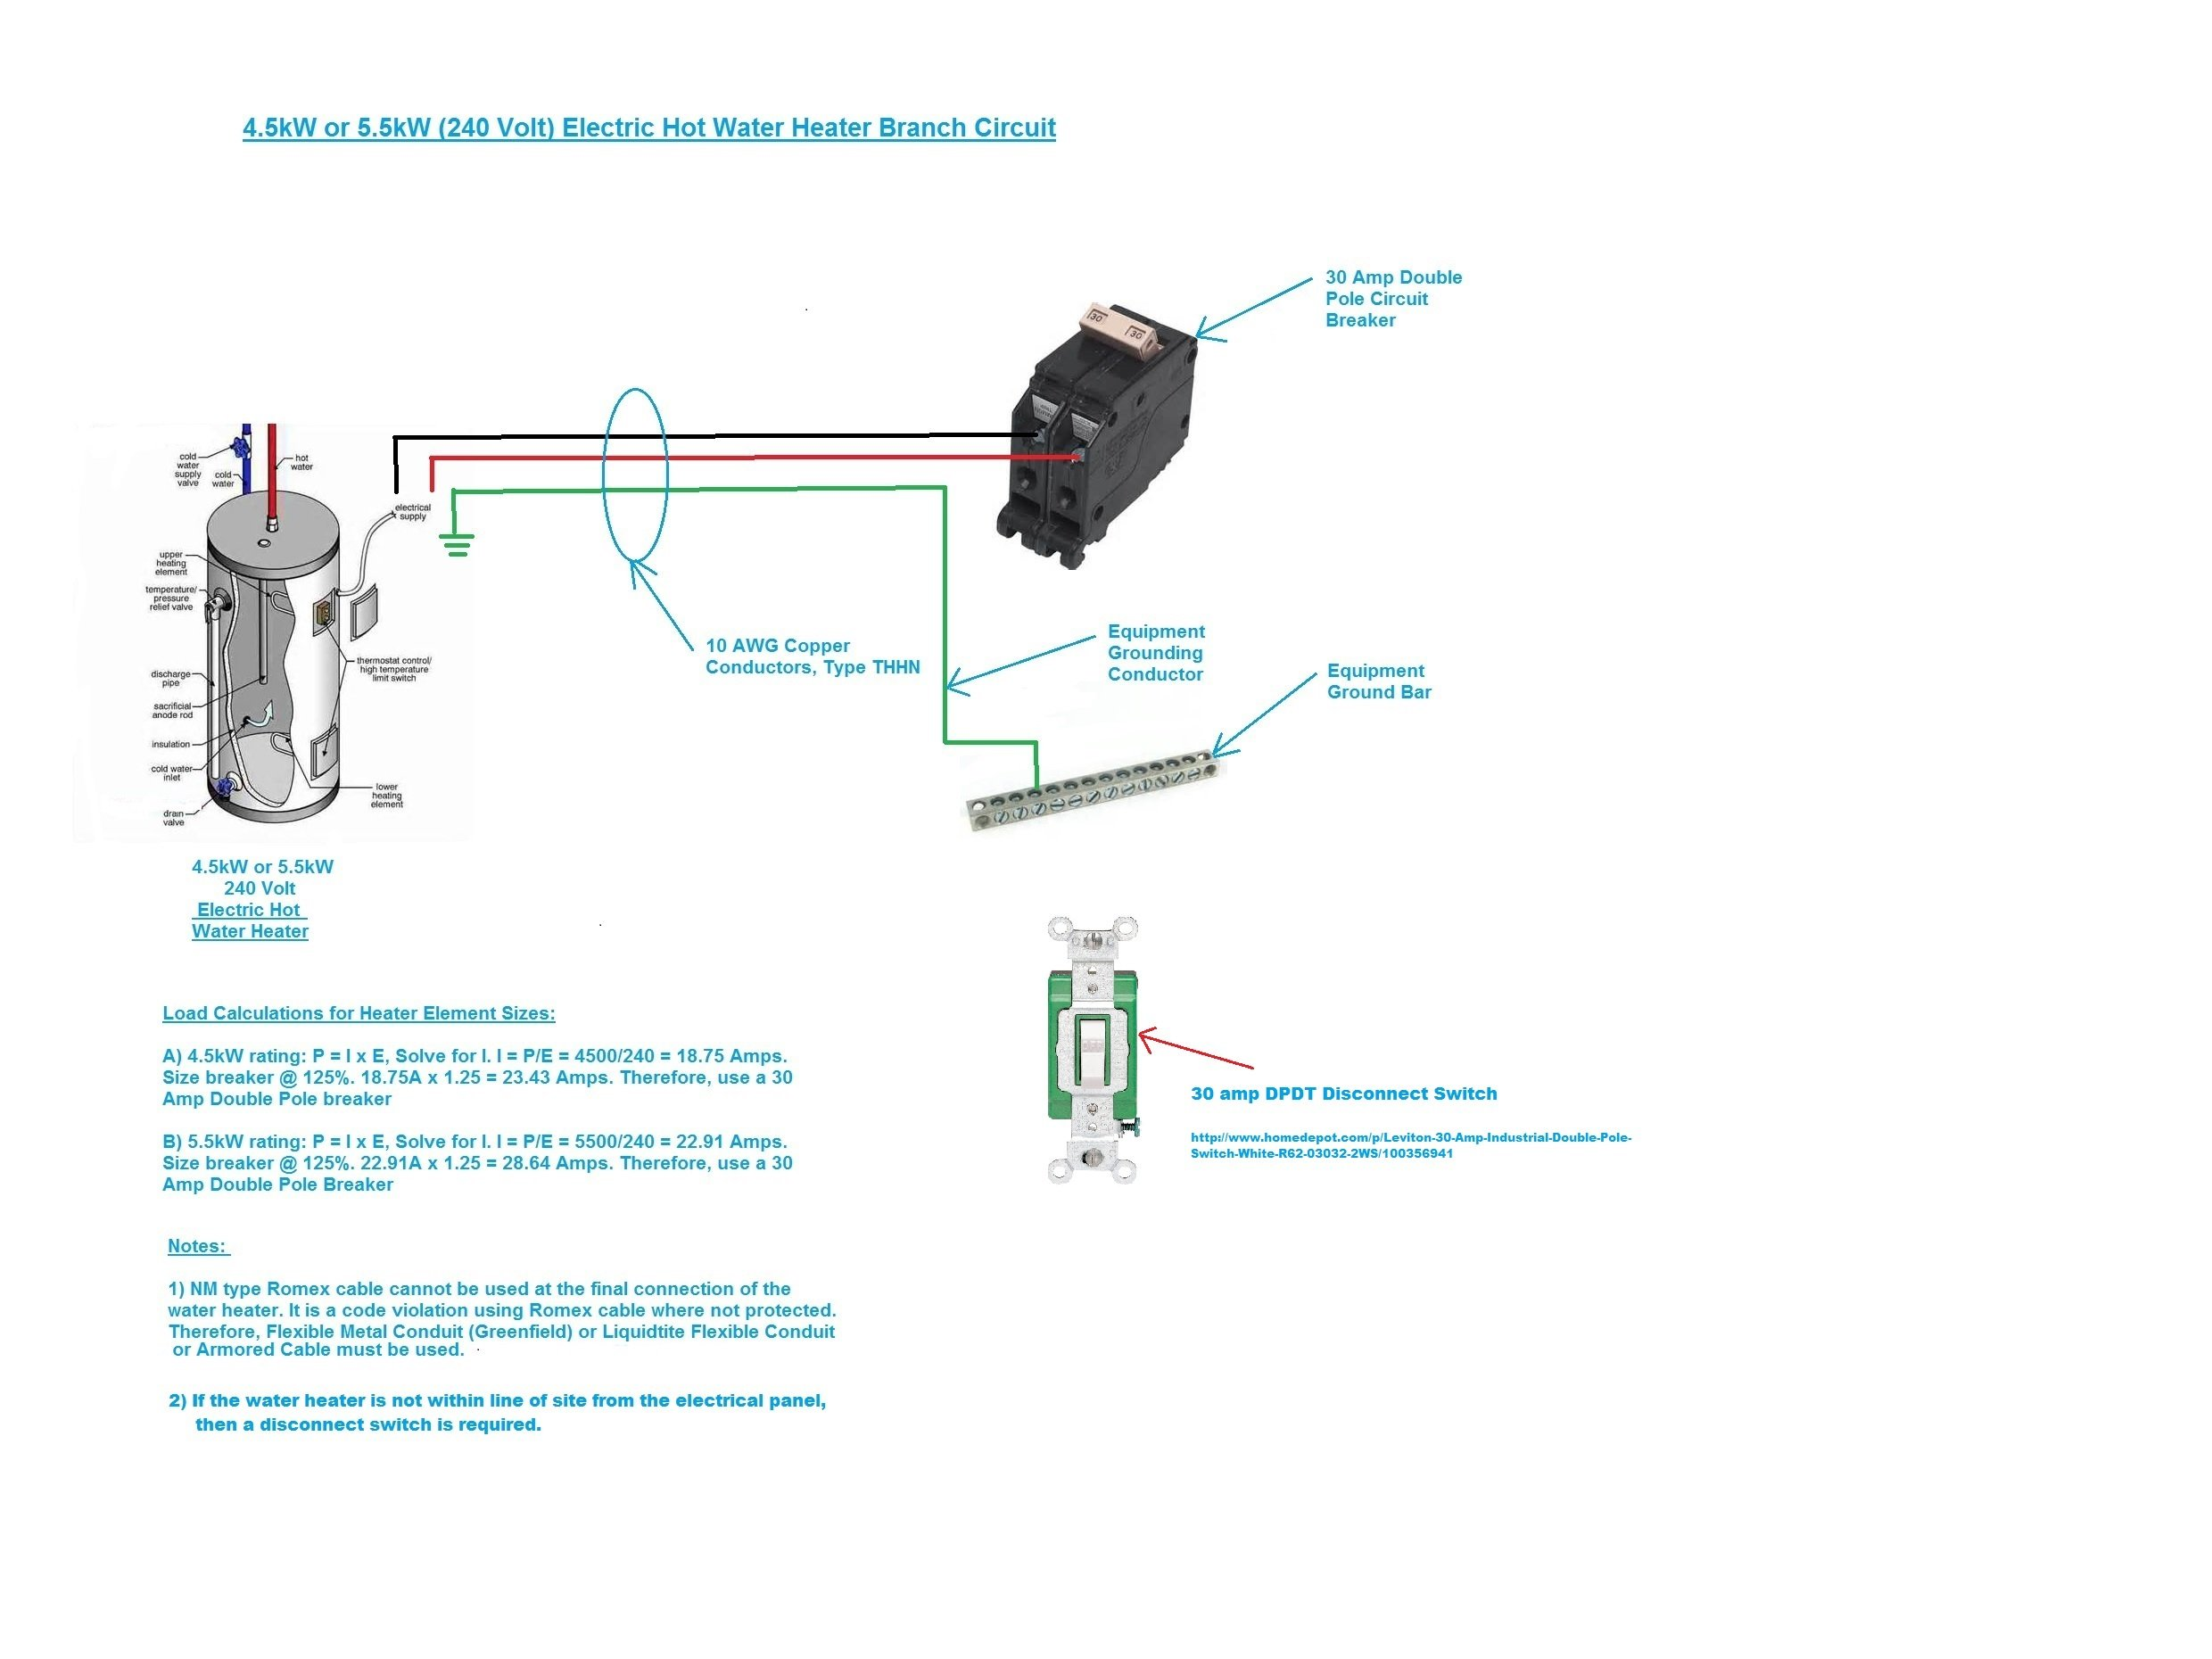 I Have An Old Zinsco Breaker Box And Need To Wire In A 240volt Water Heater How Can I Do It